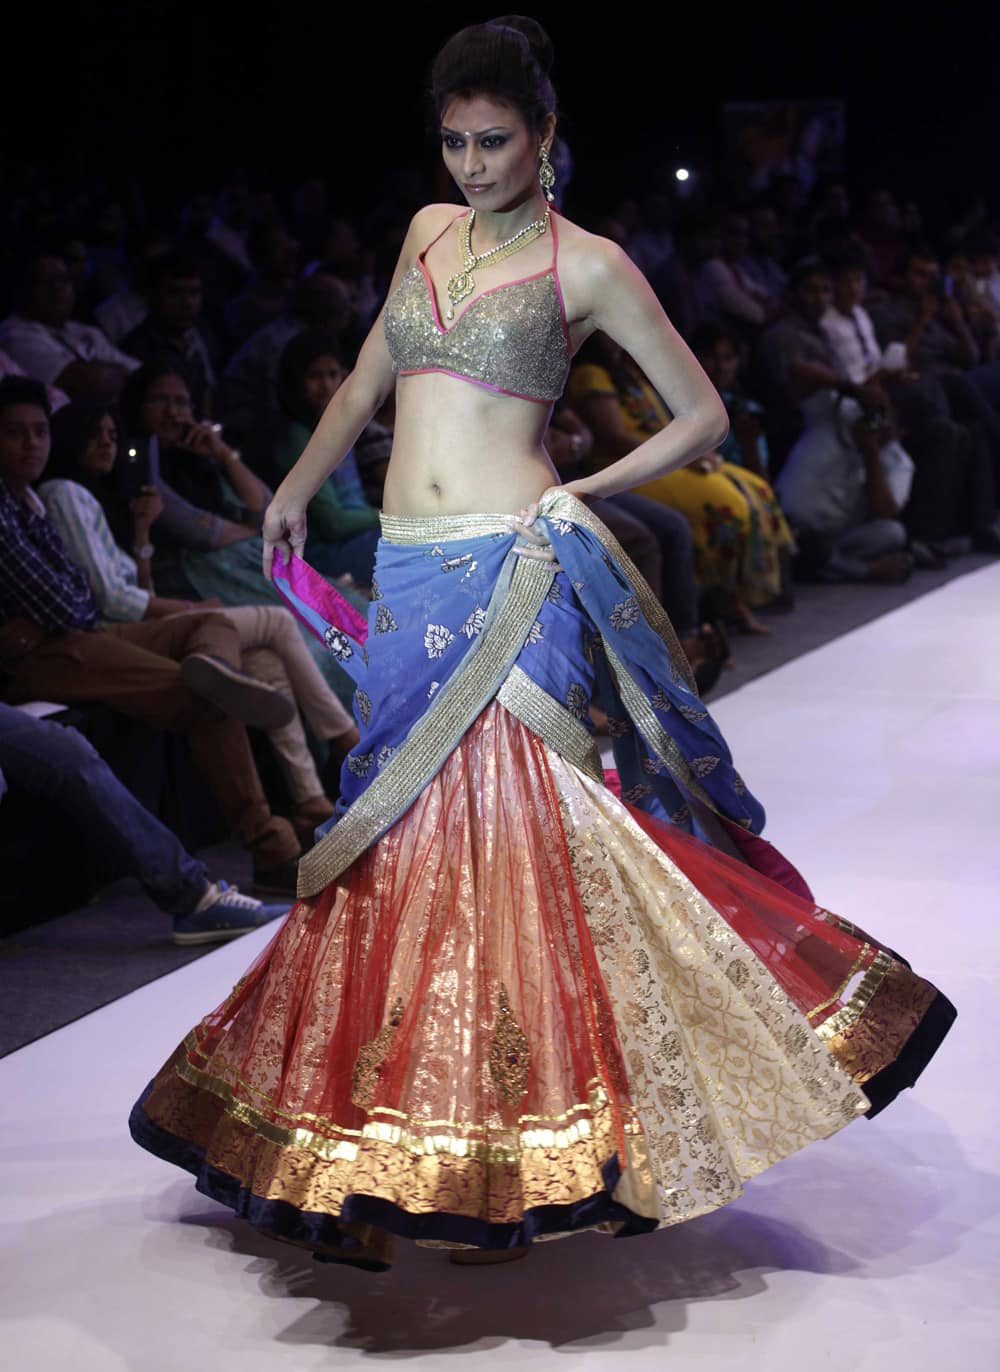 A model displays creations by NS Jewels and Sharad Raghav during the India Jewellery and Fashion Week (IJFW) in Ahmadabad.